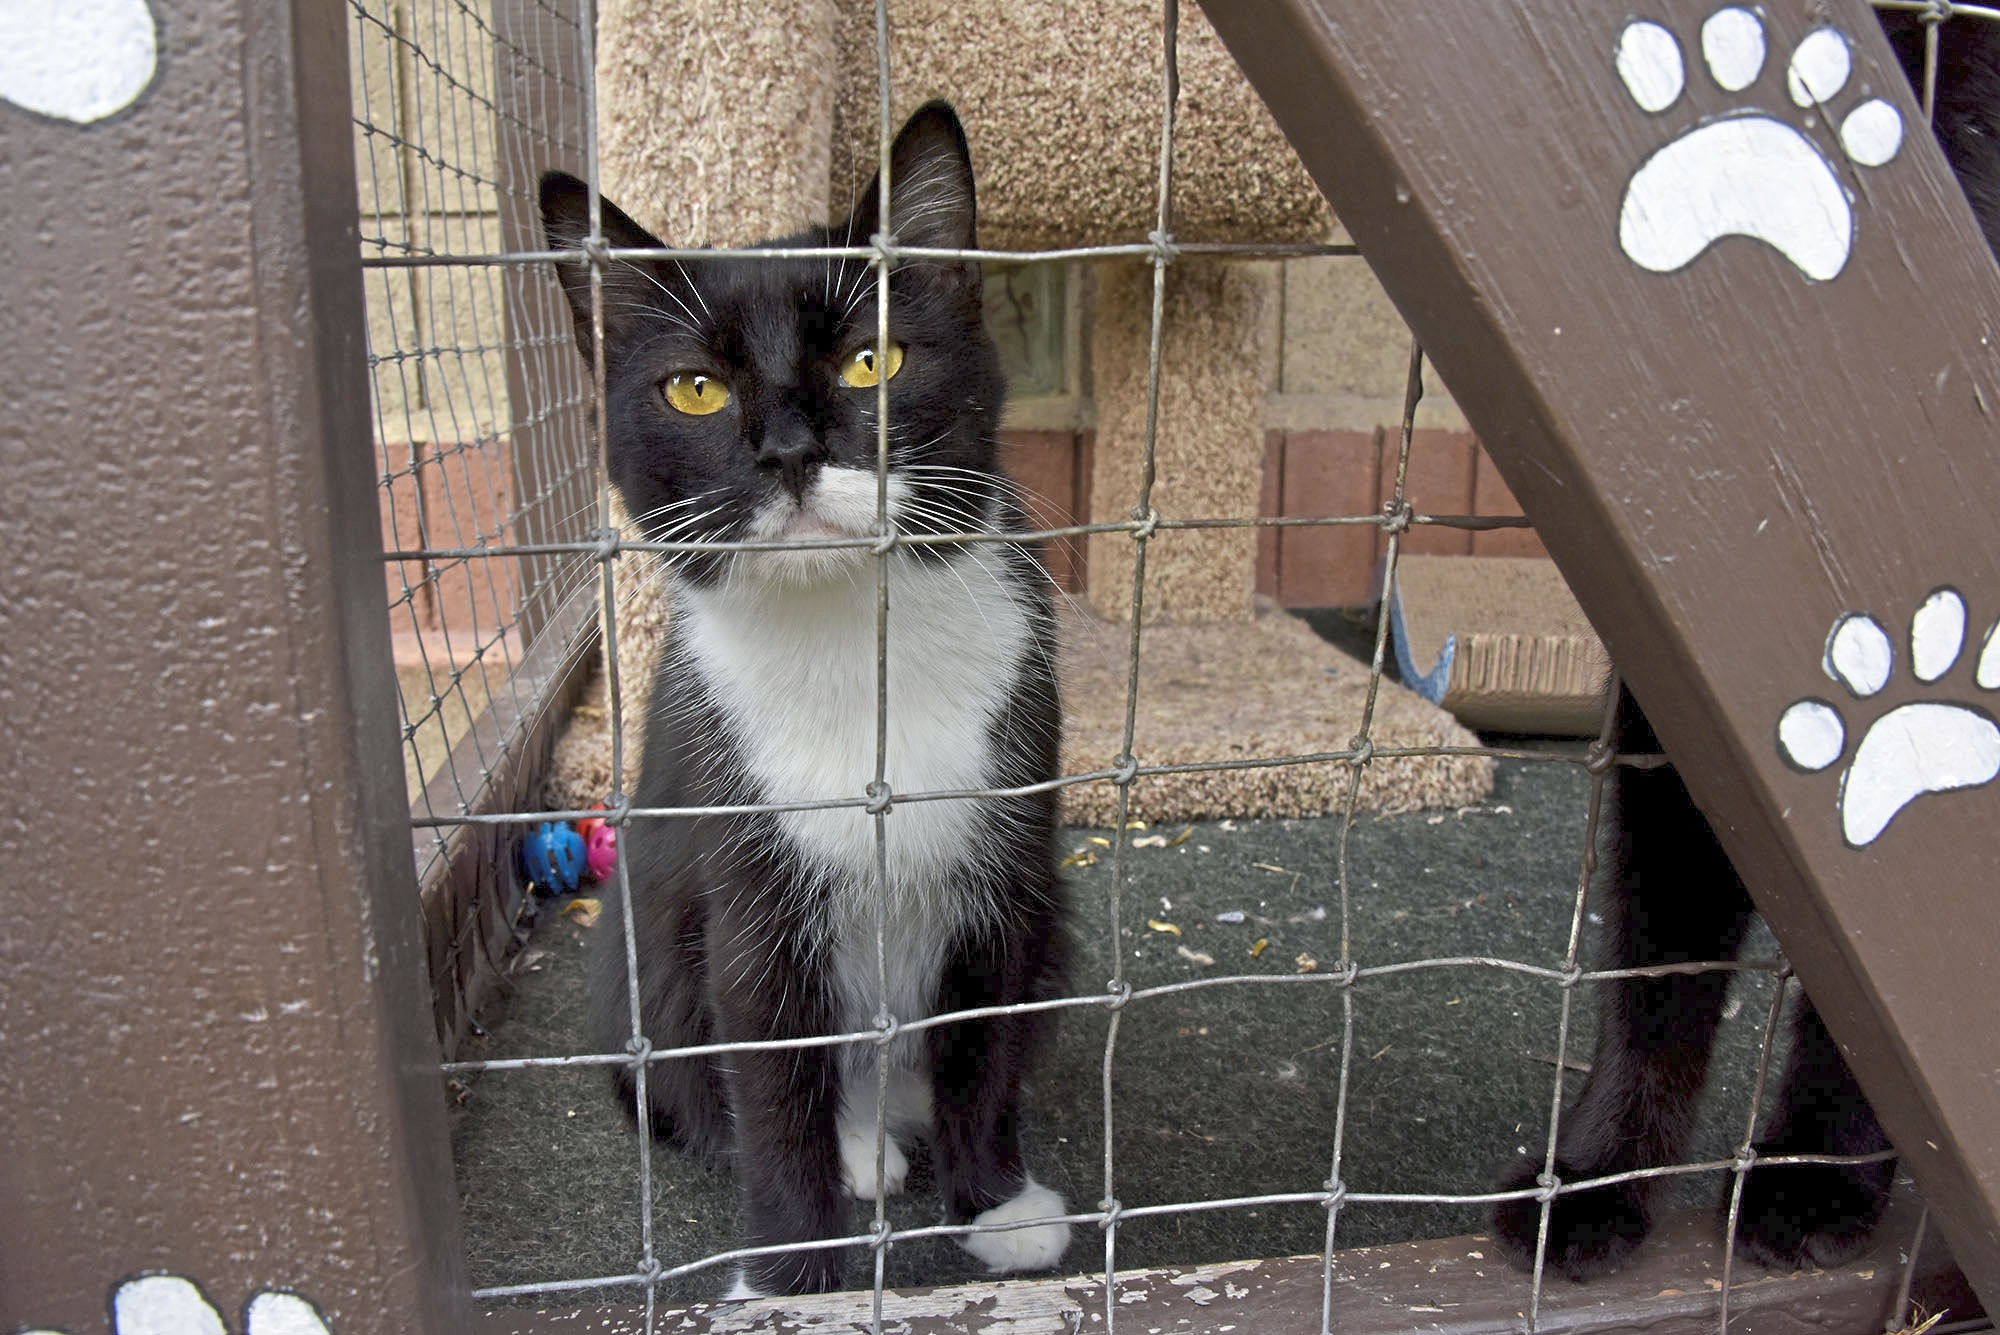 20171016dsPetTales1021Mag07-6 A tuxedo cat waits at the New Kensington Animal Protectors Of Allegheny Valley shelter.